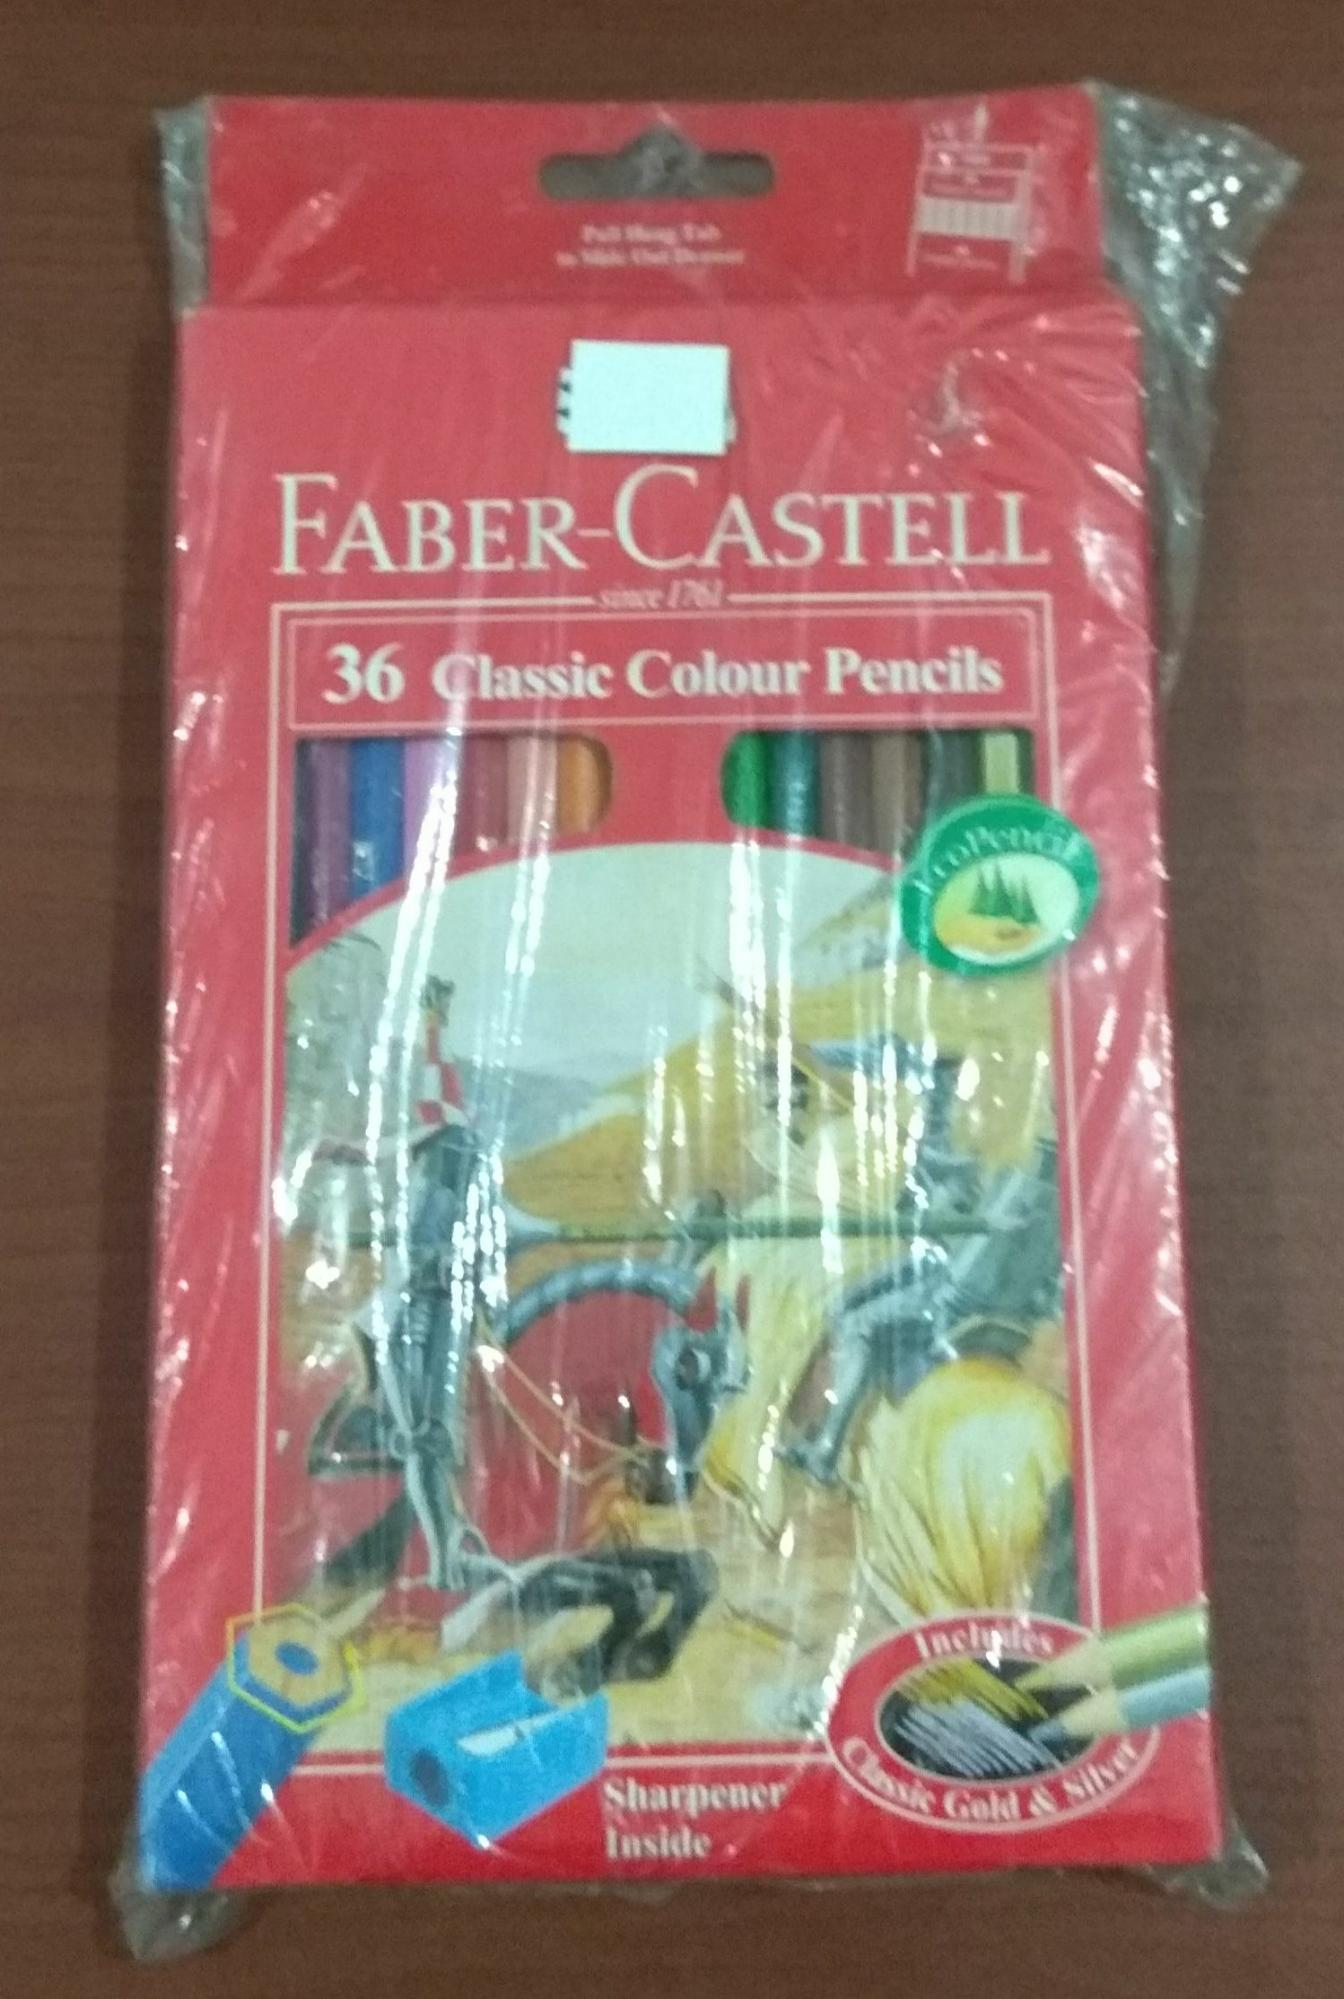 Pensil warna Faber Castell isi 36 Classic